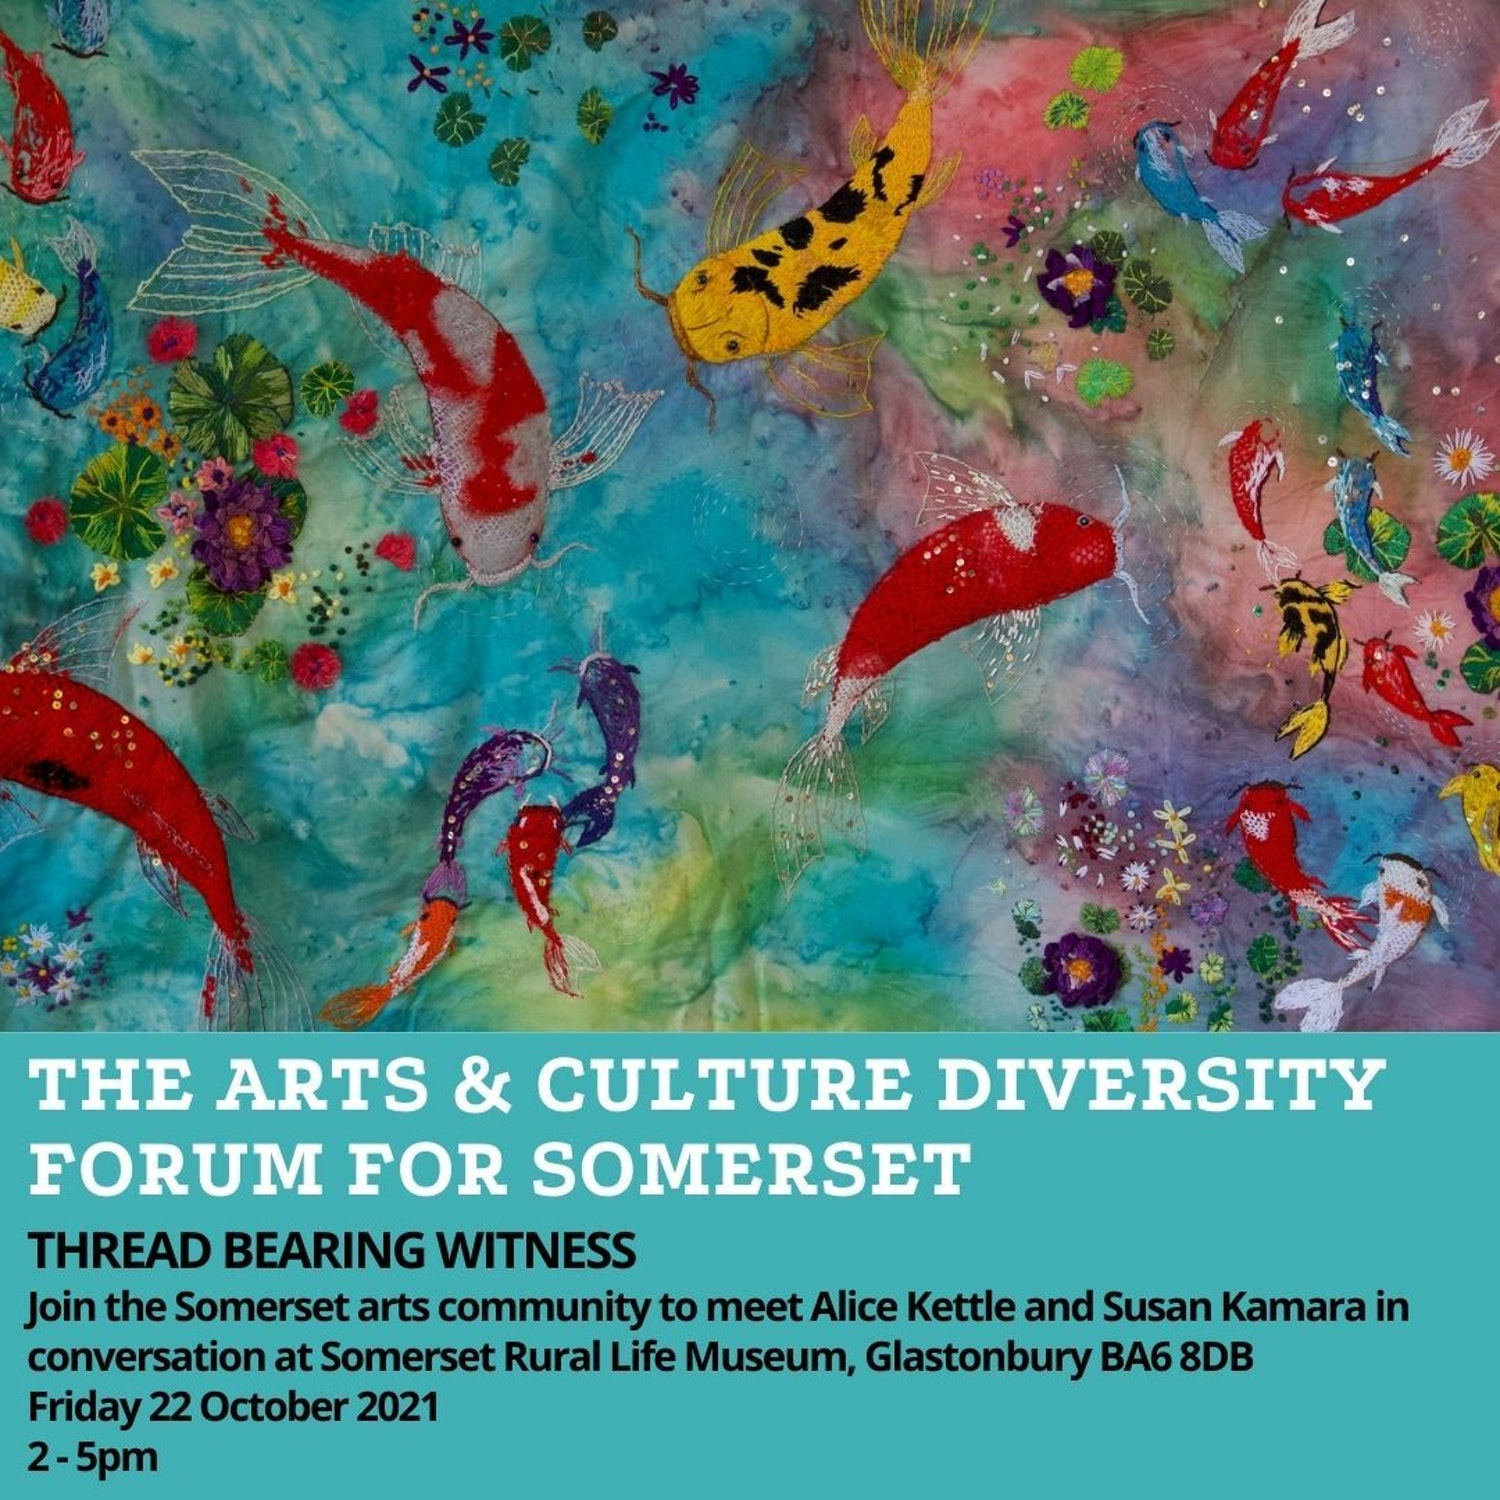 The Arts Culture Diversity Forum for Somerset square